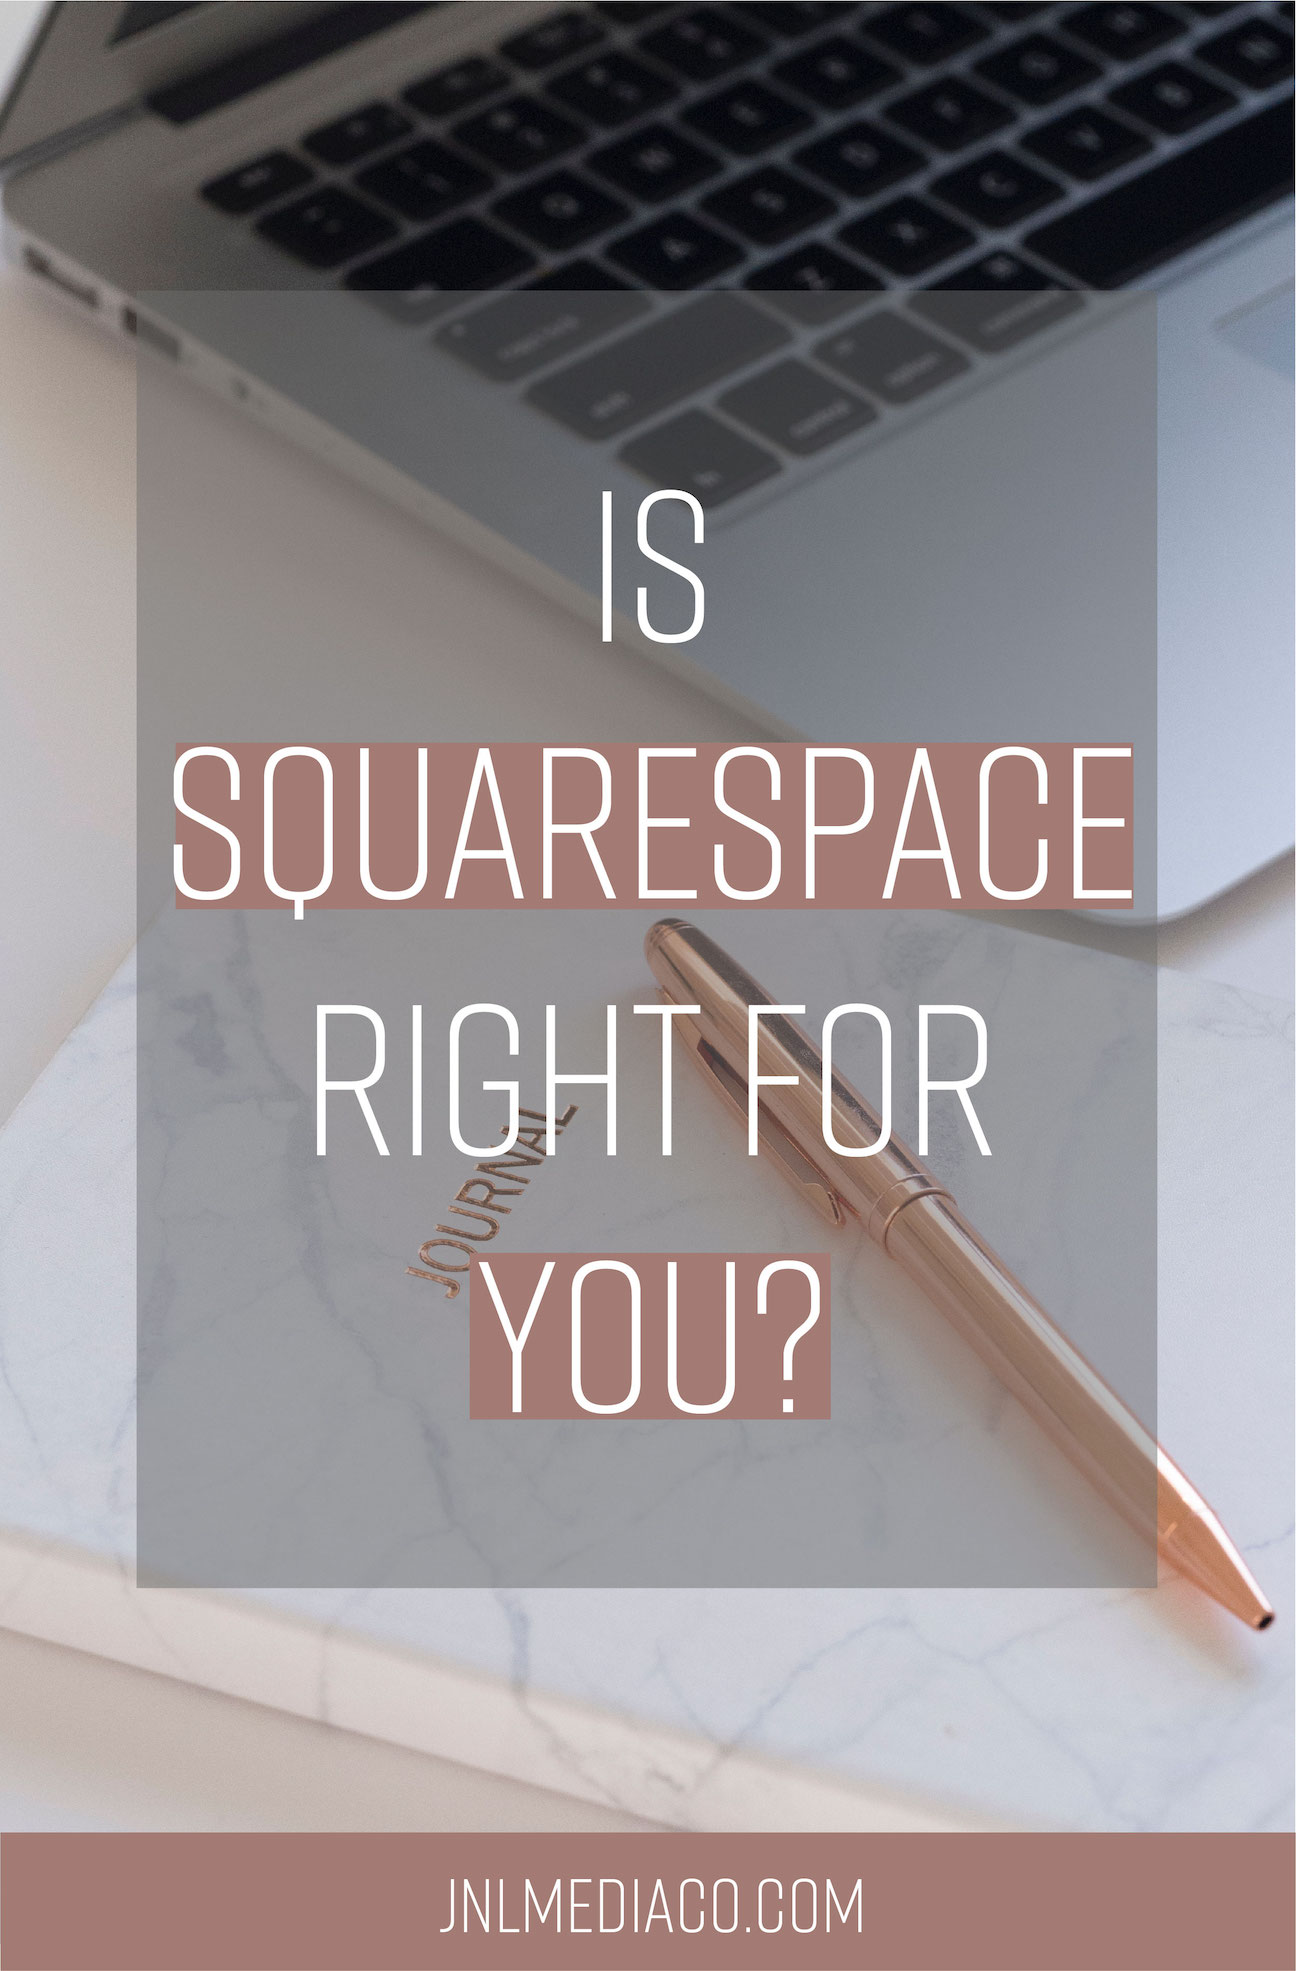 How do you know if Squarespace is for you? In general, if you are a creative entrepreneur, small business owner, photographer, or blogger then Squarespace can be a good fit. If you are a bigger company, sell a lot of products online, or want to create a membership site then Squarespace might not be your best option. Read the full post to find out if Squarespace is right for YOU.